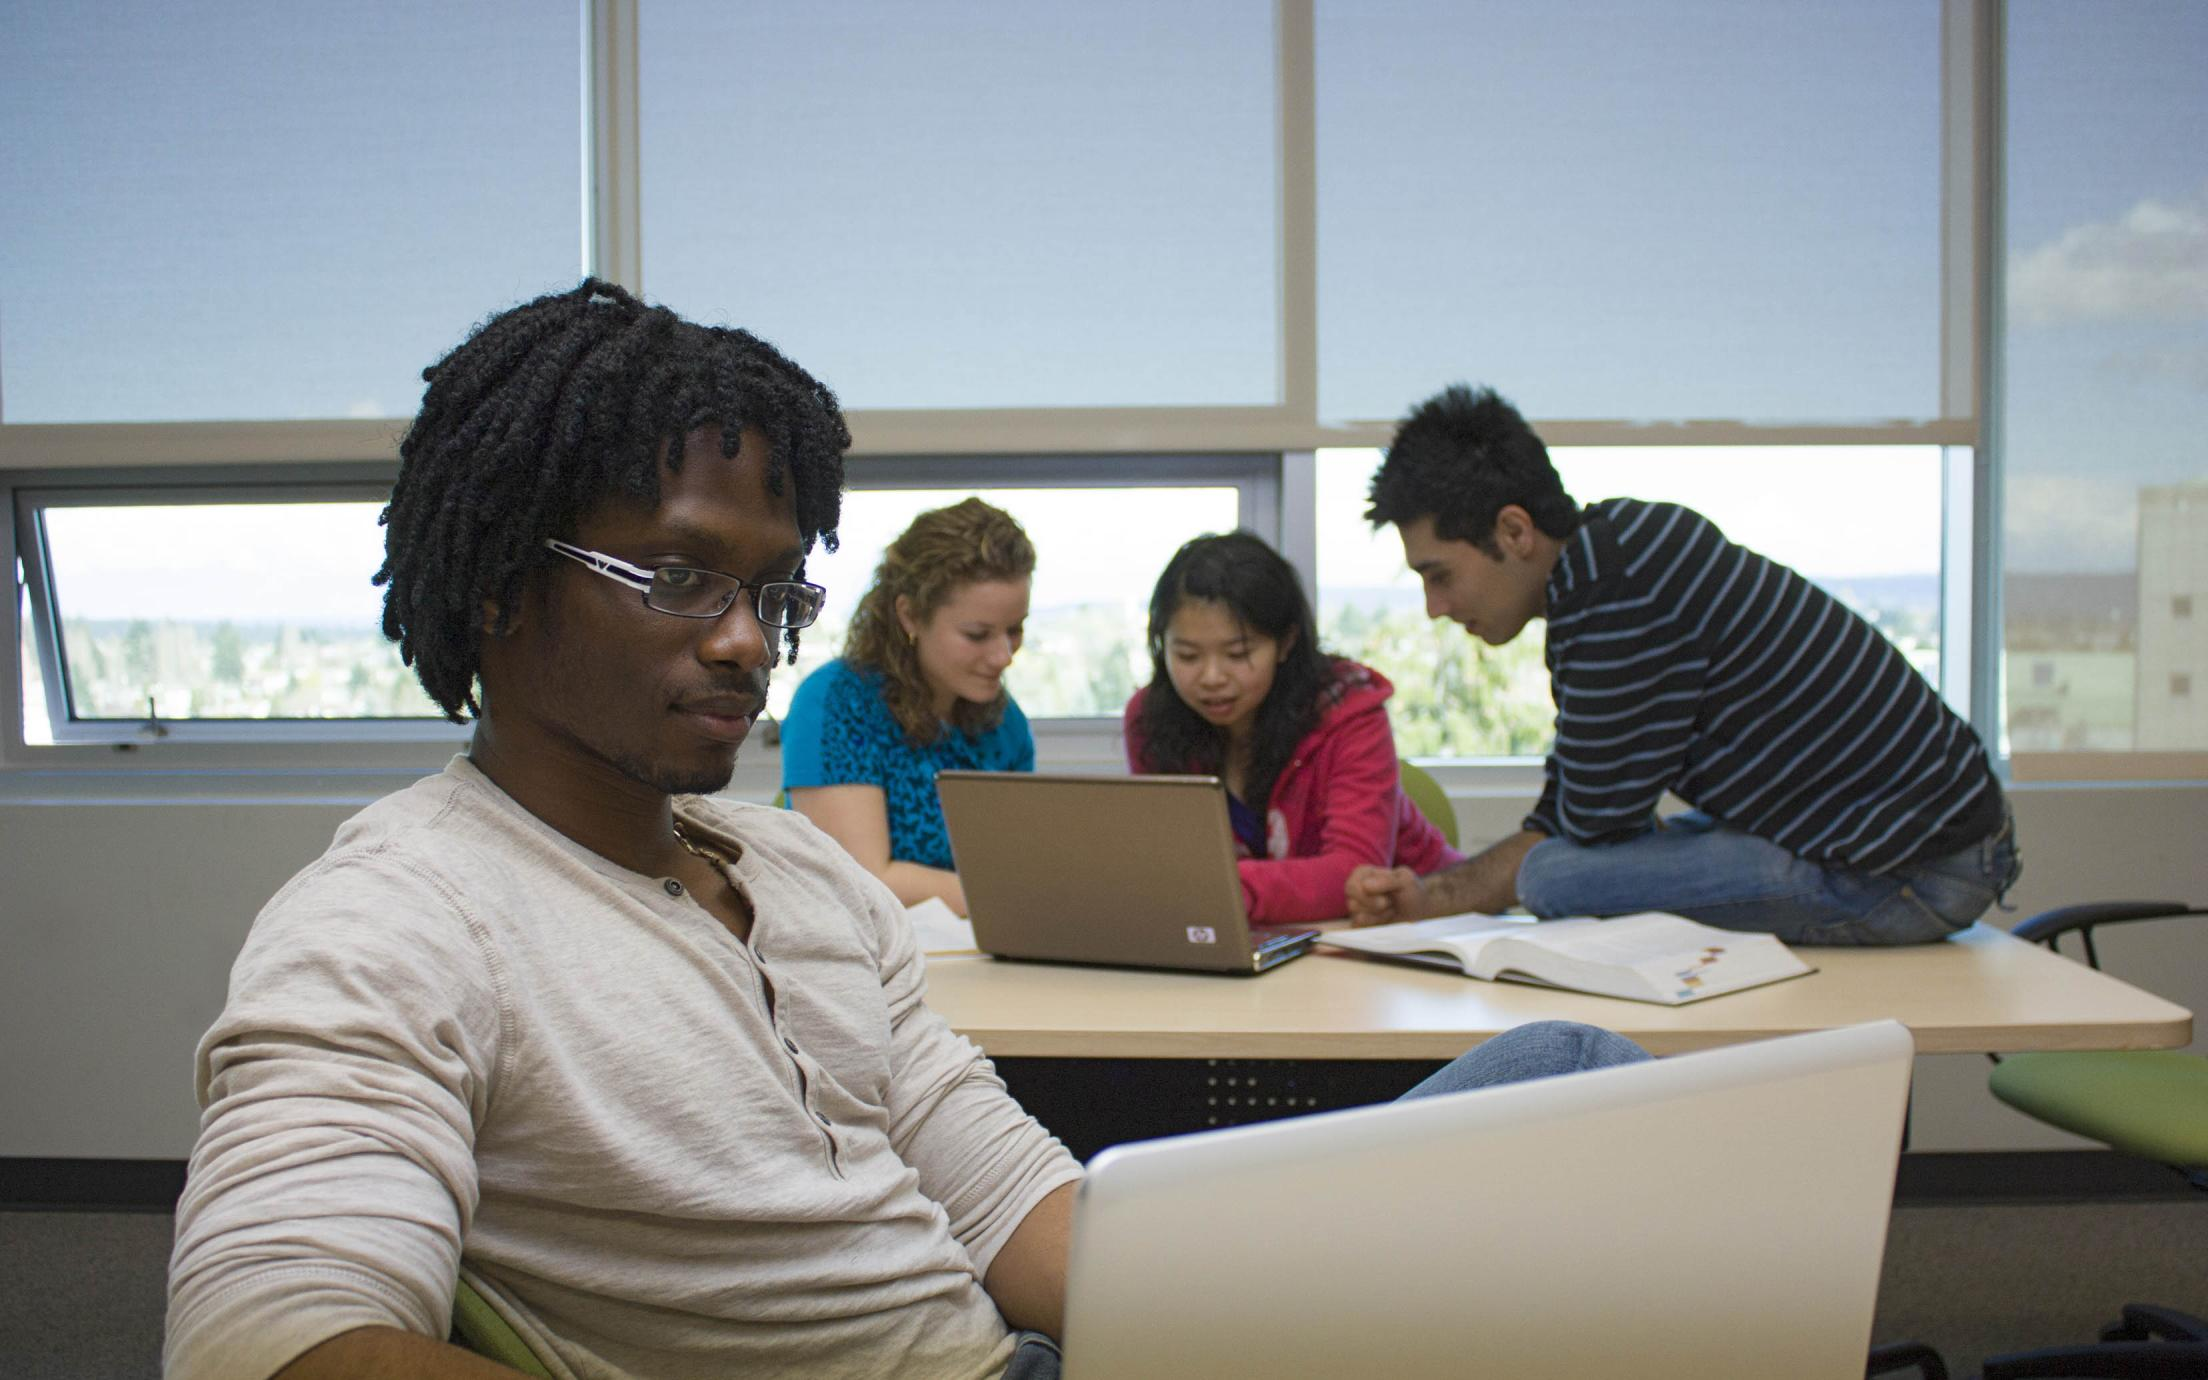 Students of the Bachelor of Arts, Minor in Mathematics program working on a paper